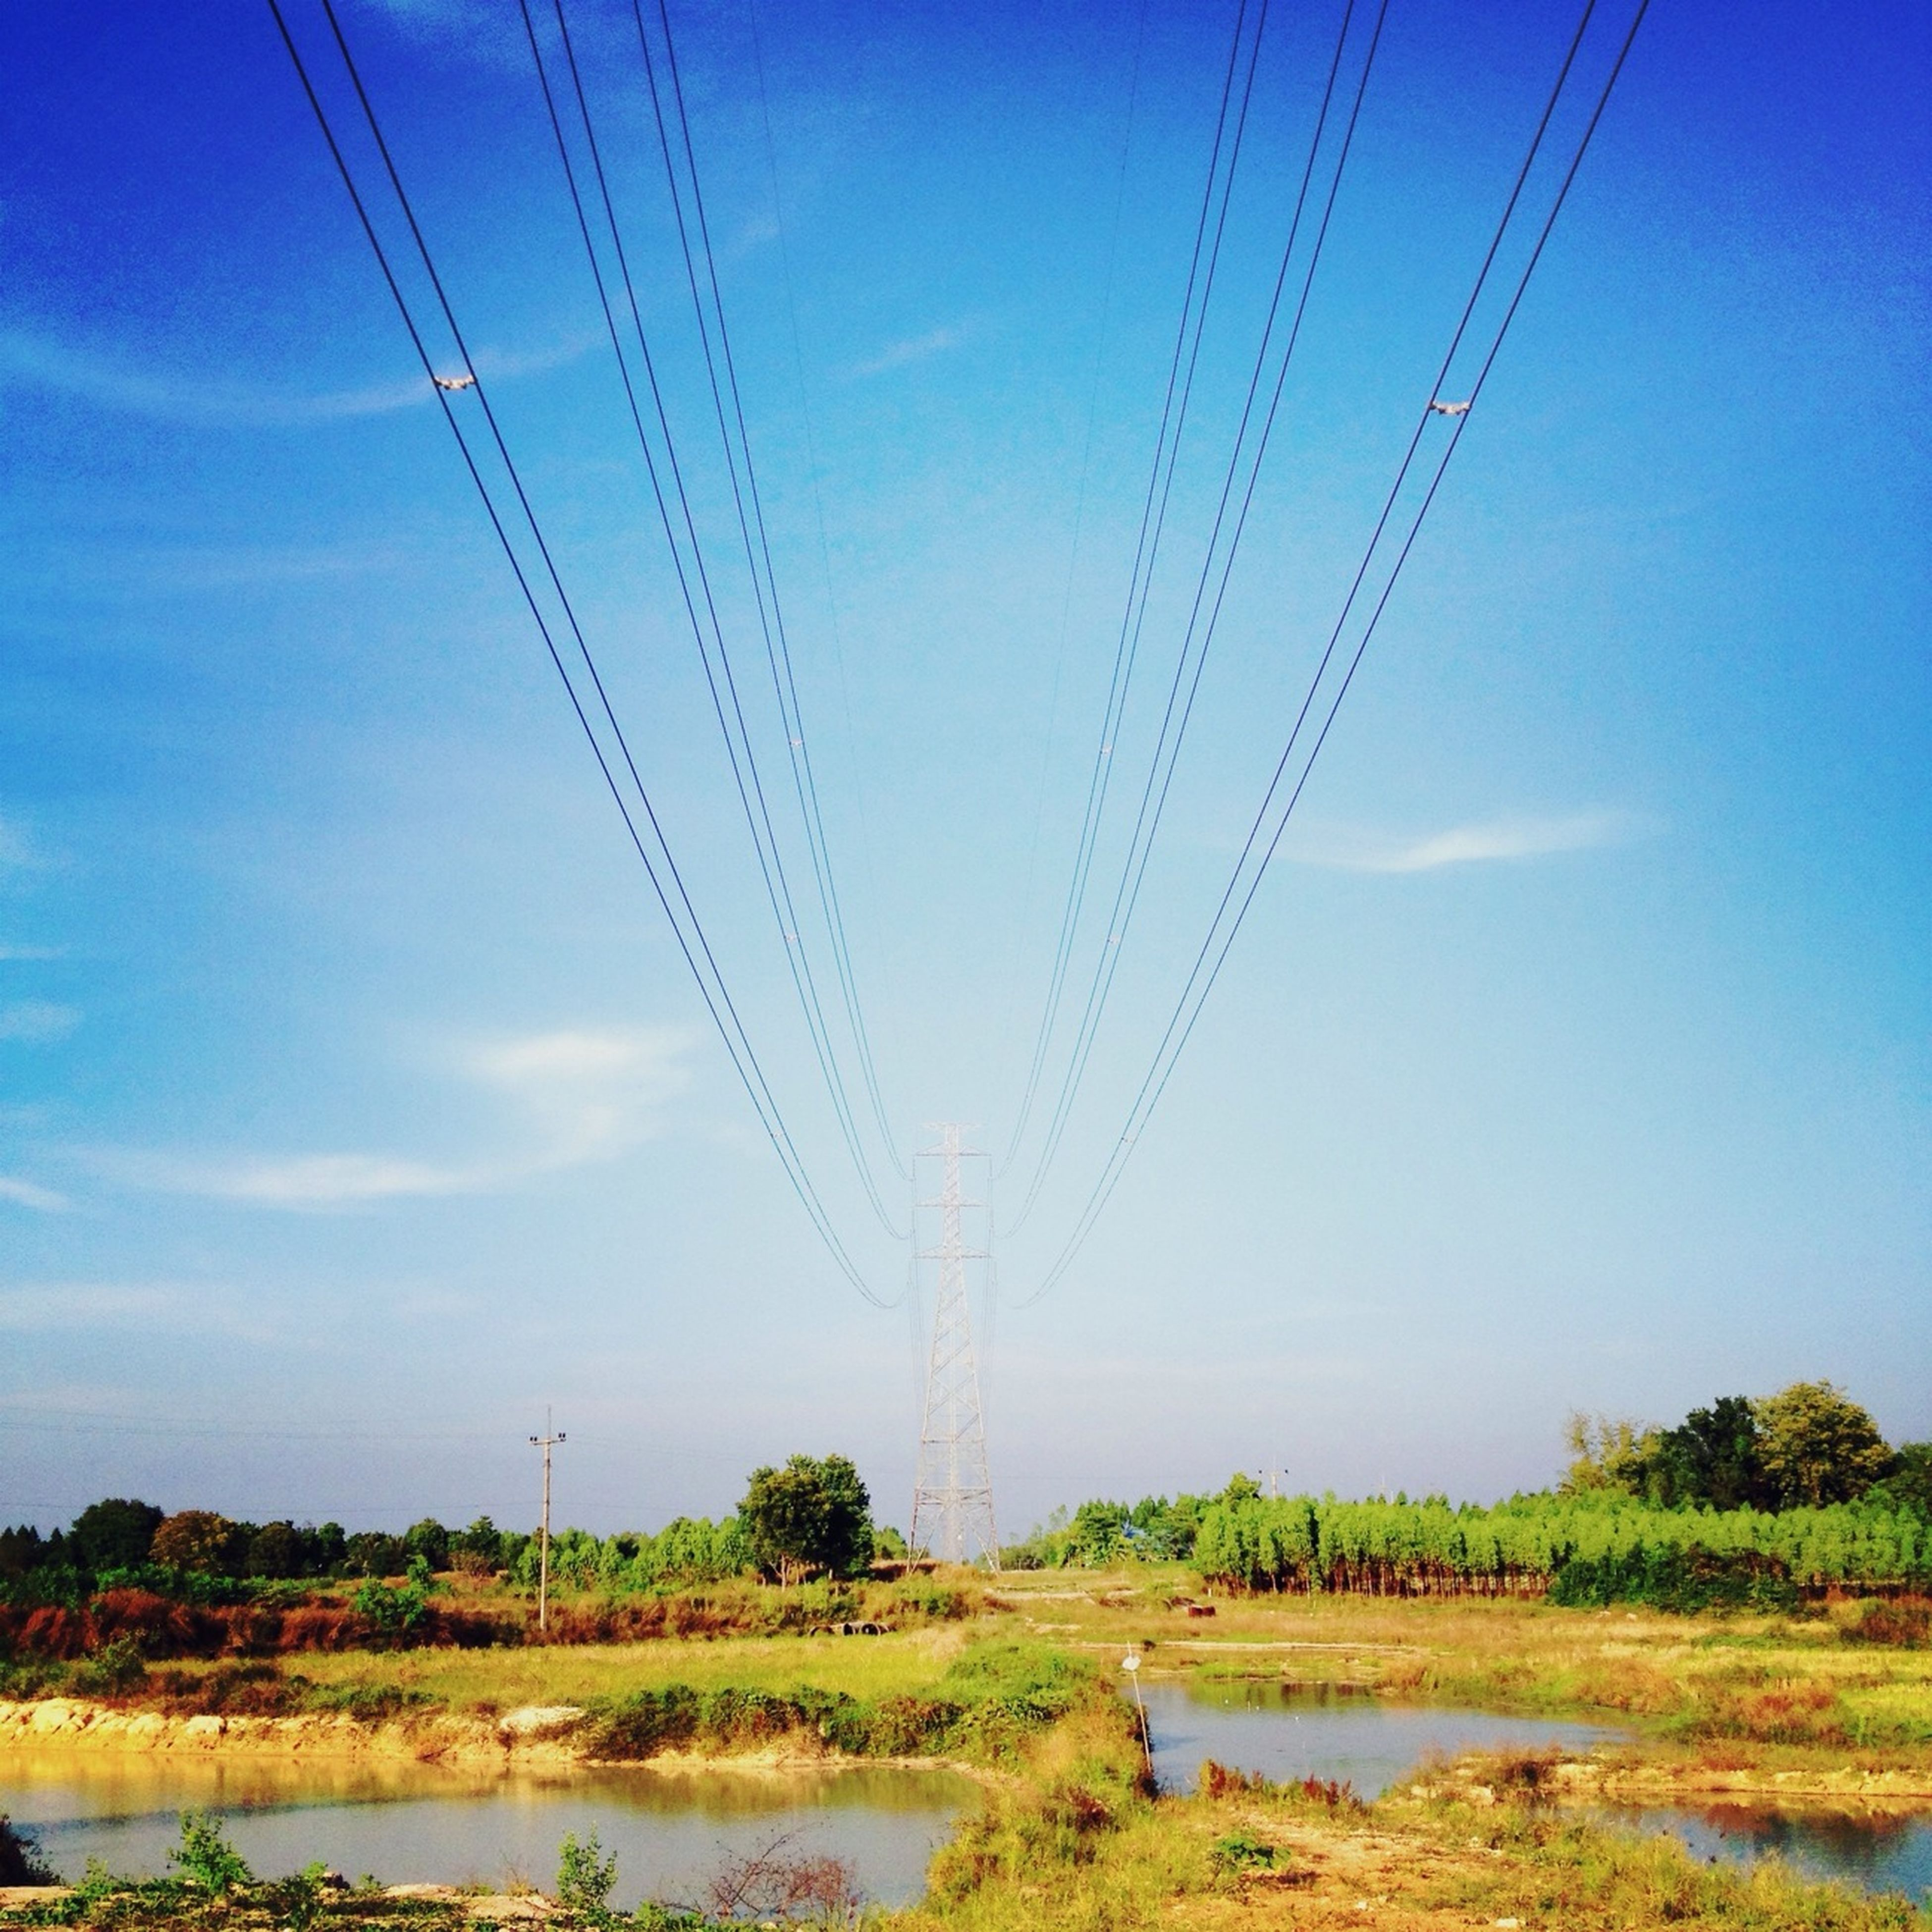 power line, electricity pylon, power supply, electricity, cable, connection, fuel and power generation, blue, sky, technology, tranquility, tranquil scene, landscape, nature, scenics, field, water, power cable, low angle view, beauty in nature